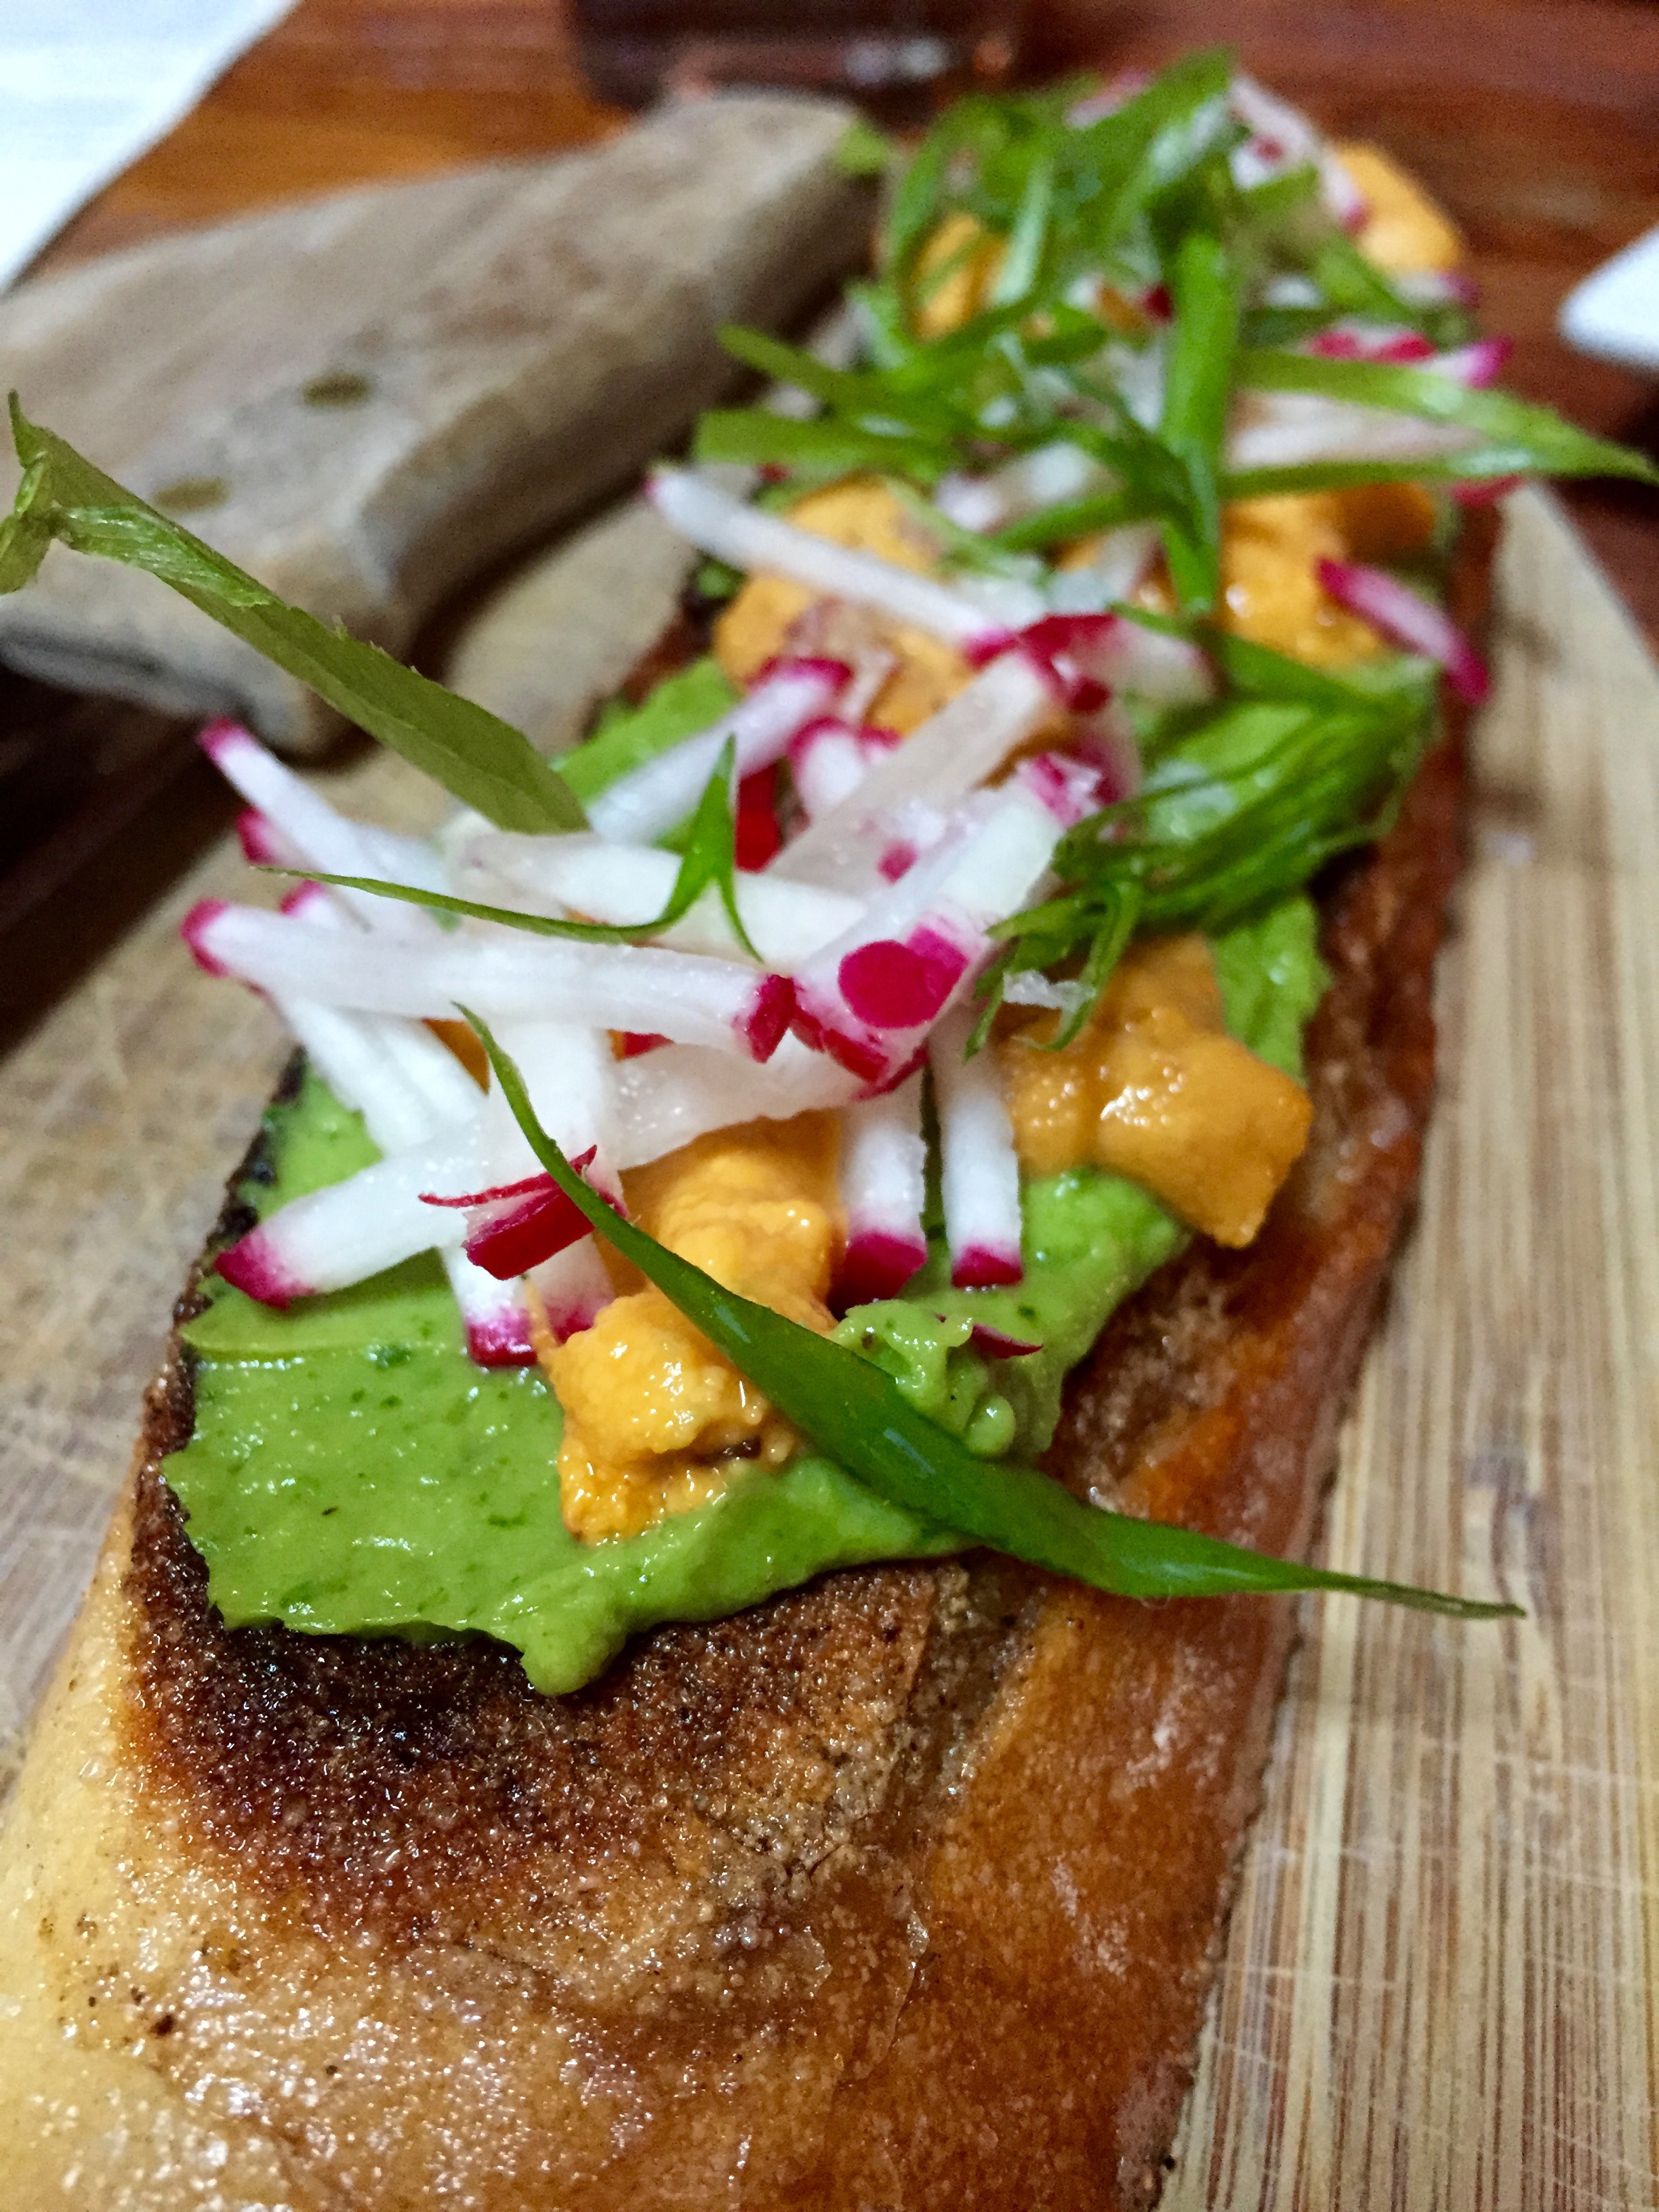 Sea Urchin Toast with avocado mousse, radish, and scallions.